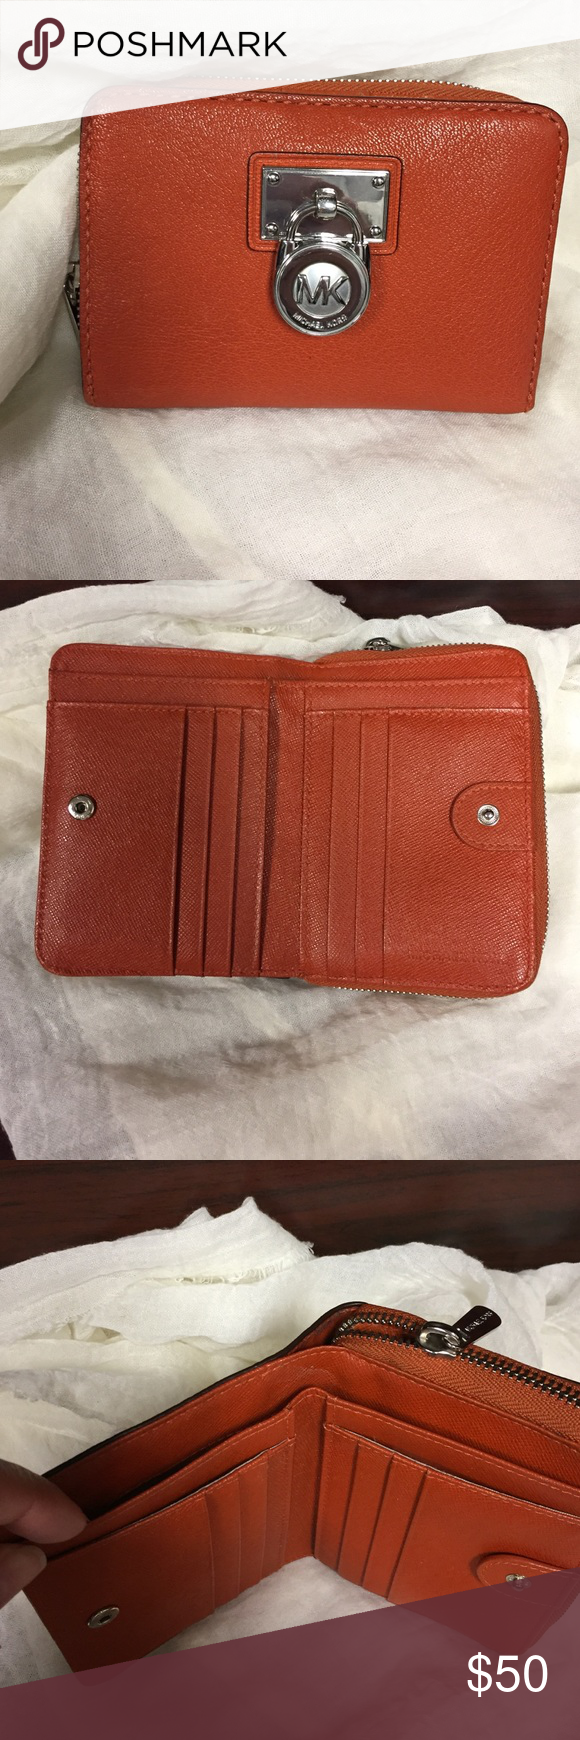 ✨Like New Michael Kors Wallet ✨ I just purchased this beautiful item on Posh a week ago but the buckle is too big for my tiny purse. My loss is your gain! This wallet is a genuine beauty. The color is unique.PLEASE DO NOT LOWBALL THIS ITEM!! KORS Michael Kors Bags Wallets